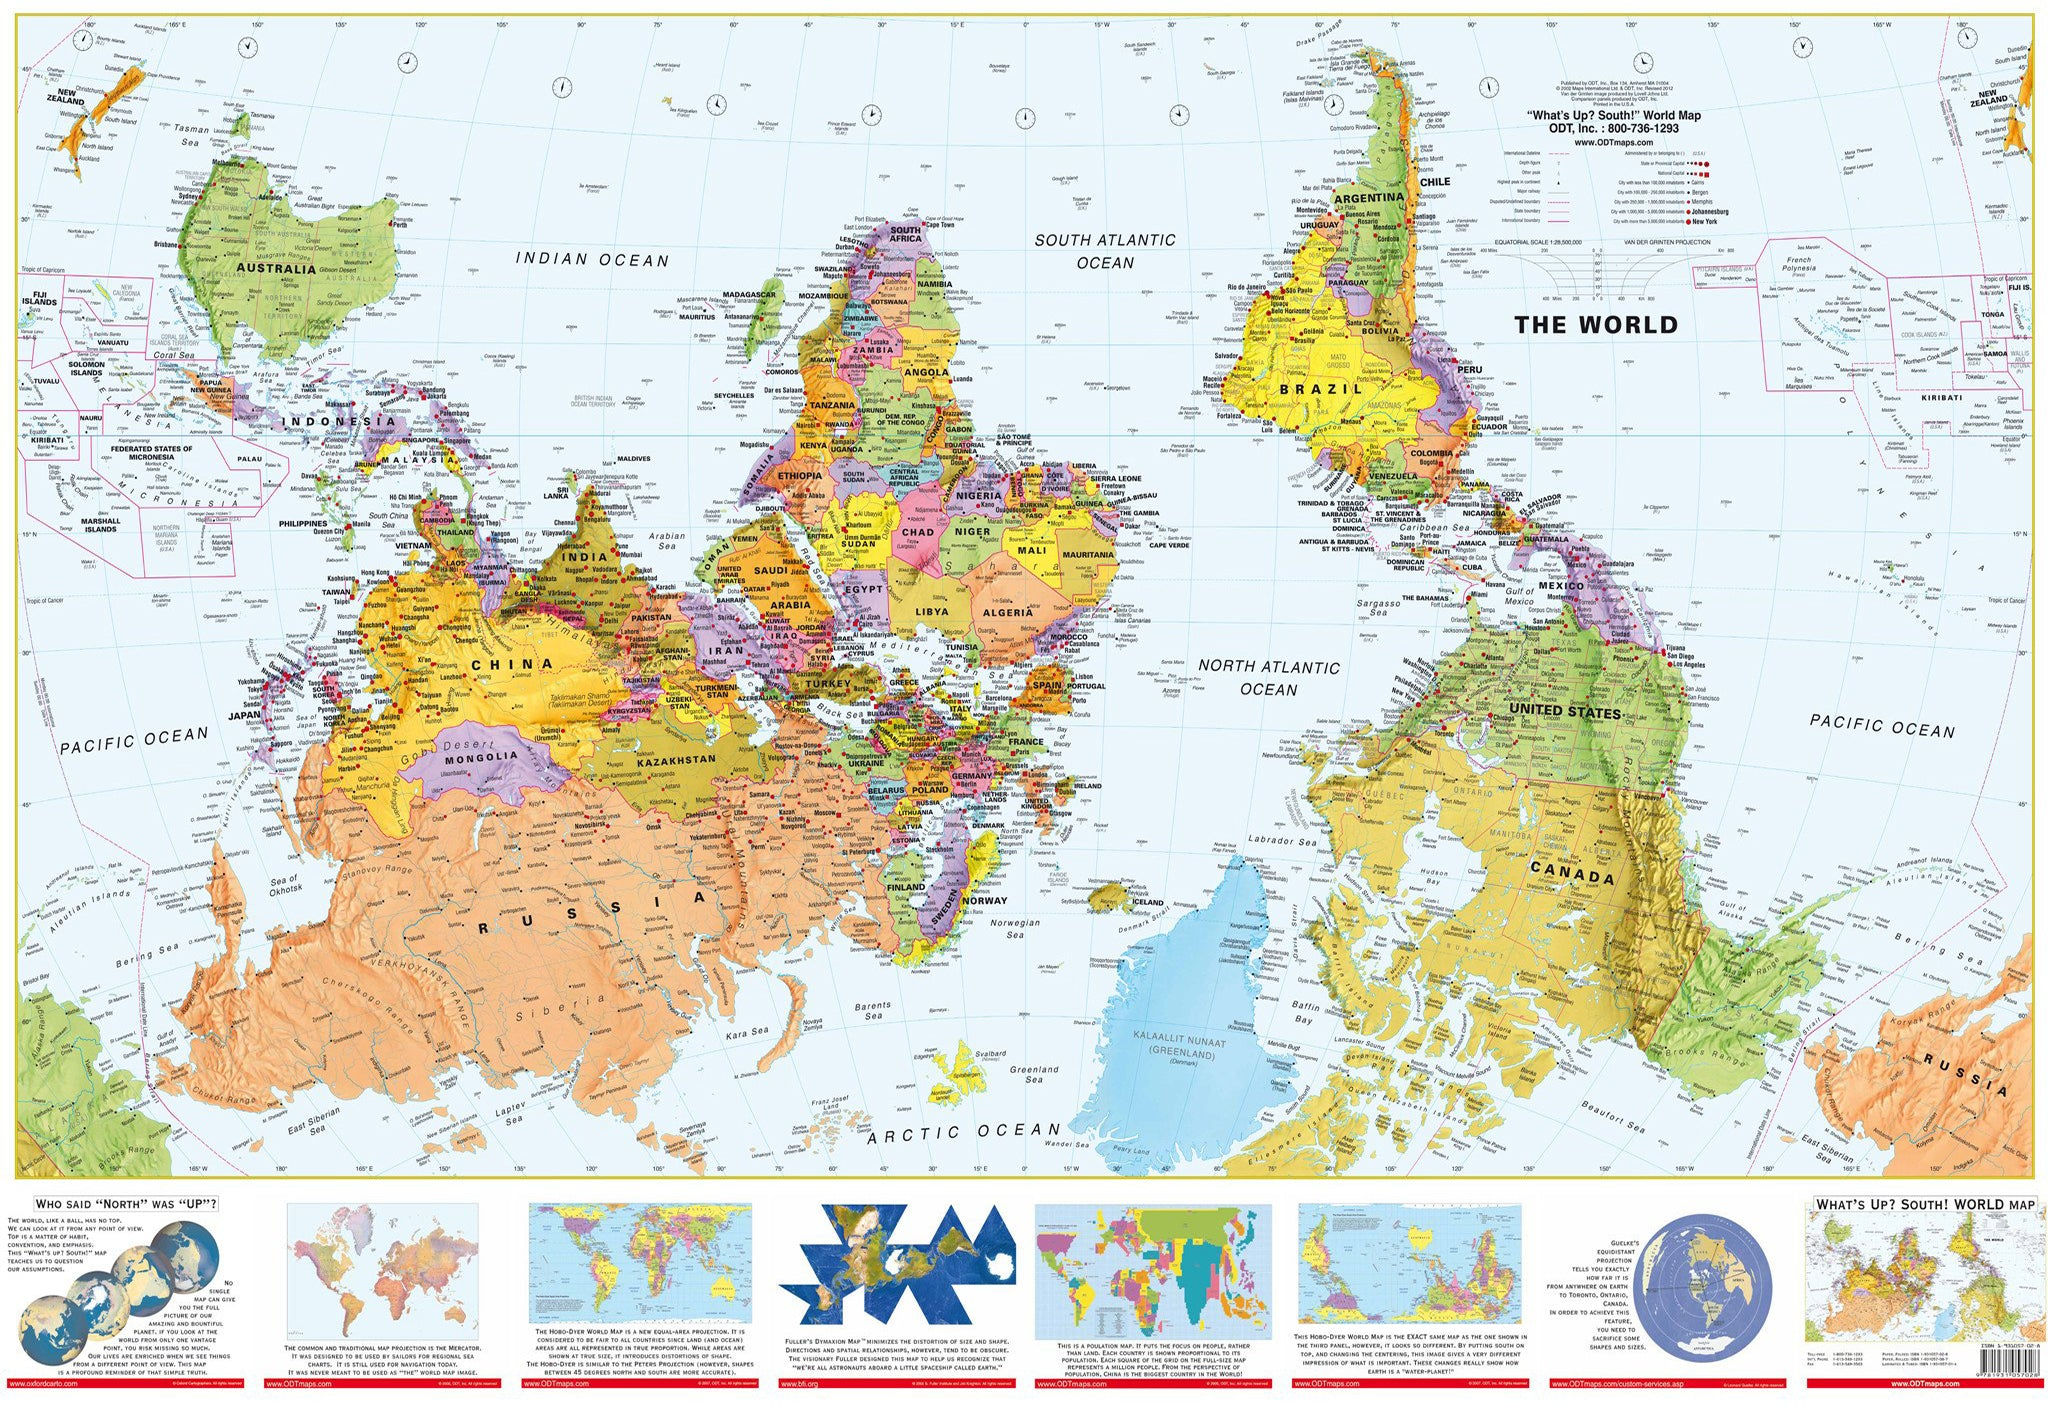 Most Detailed World Map.Upside Down World 1430 X 920mm Paper Wall Map